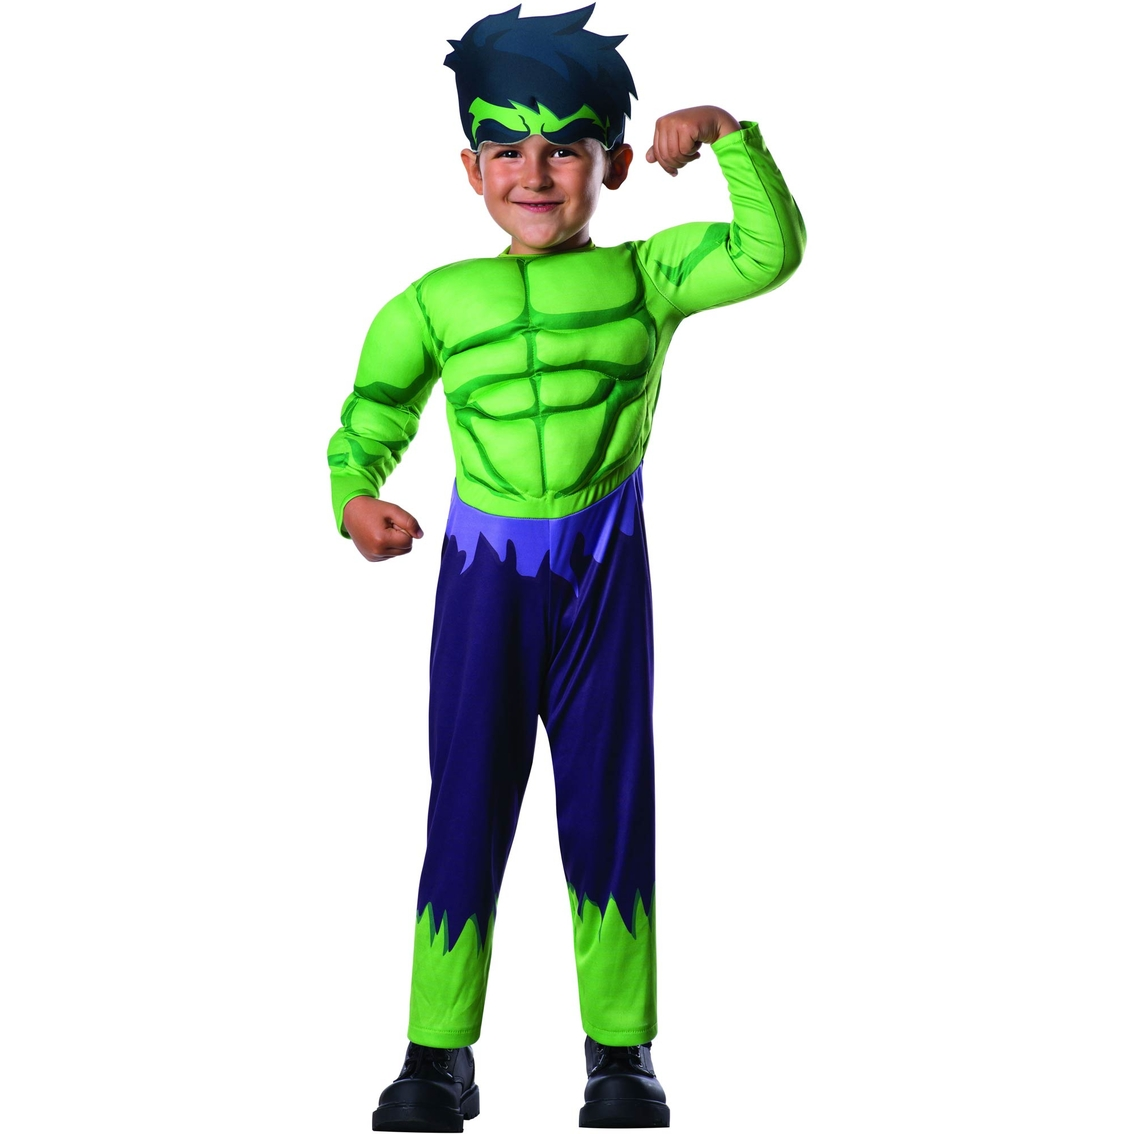 Rubieu0027s Costume Co. Toddler Boys Hulk Muscle Costume Small (2T-4T)  sc 1 st  ShopMyExchange.com : baby muscle costume  - Germanpascual.Com